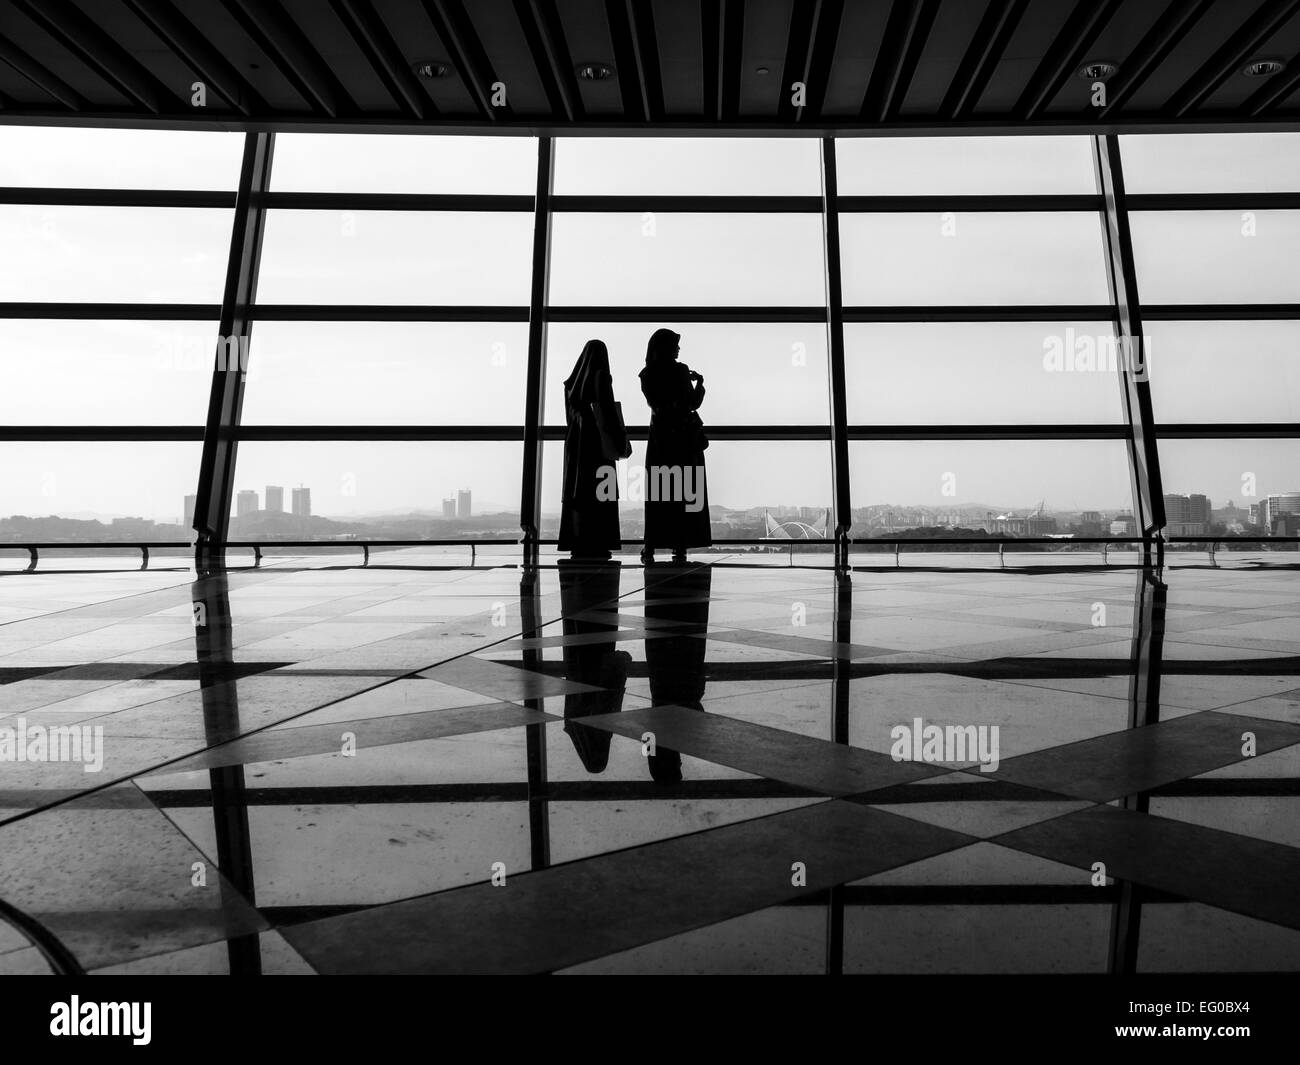 Silhouette of two Muslim women looking at the cityscape through glass walls - Stock Image